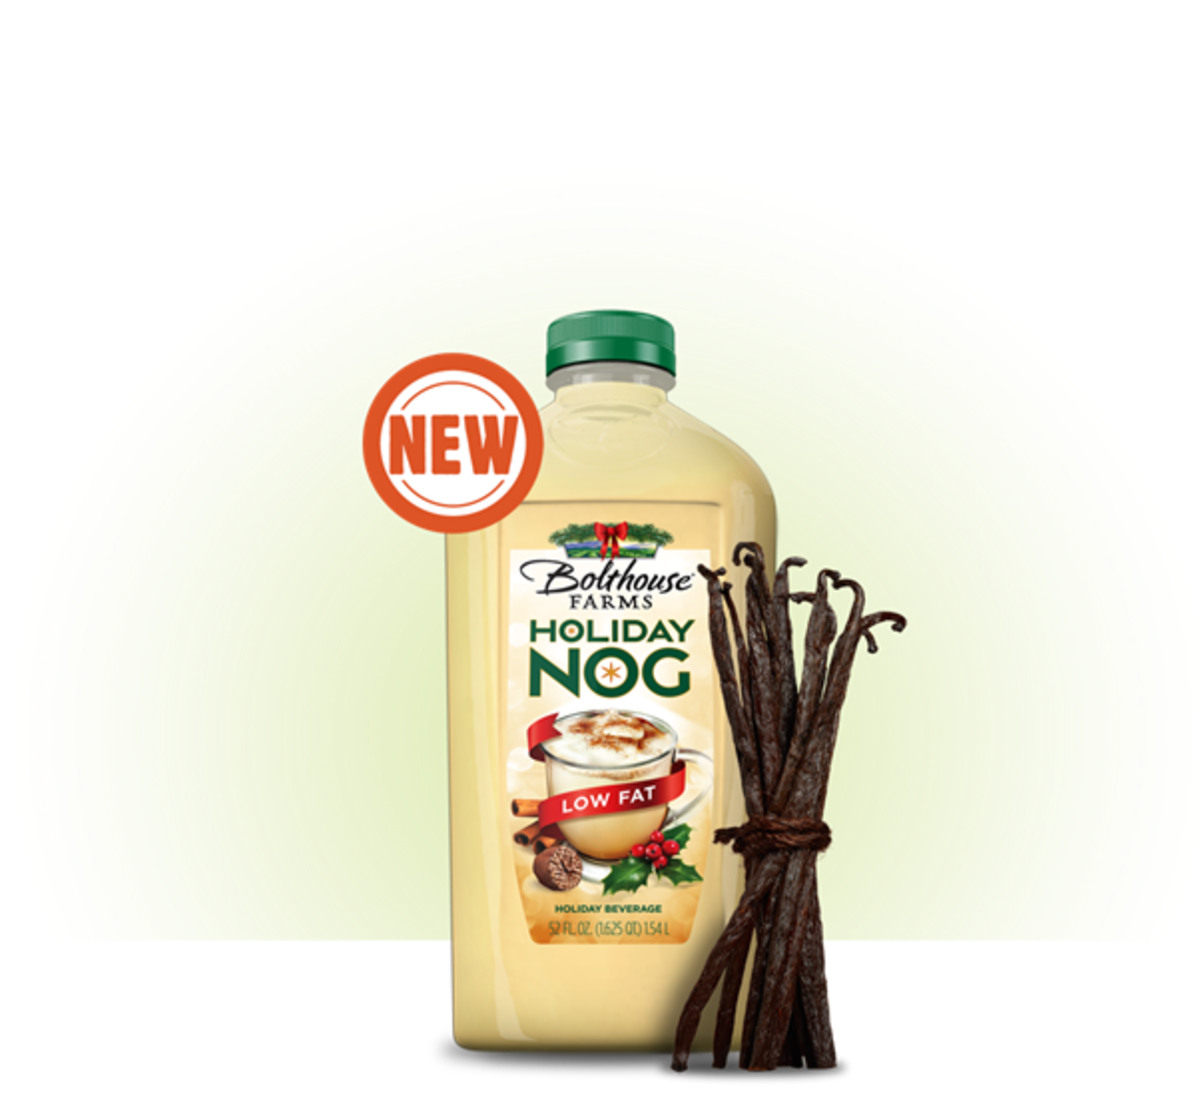 Bolthouse Farms Holiday Nog